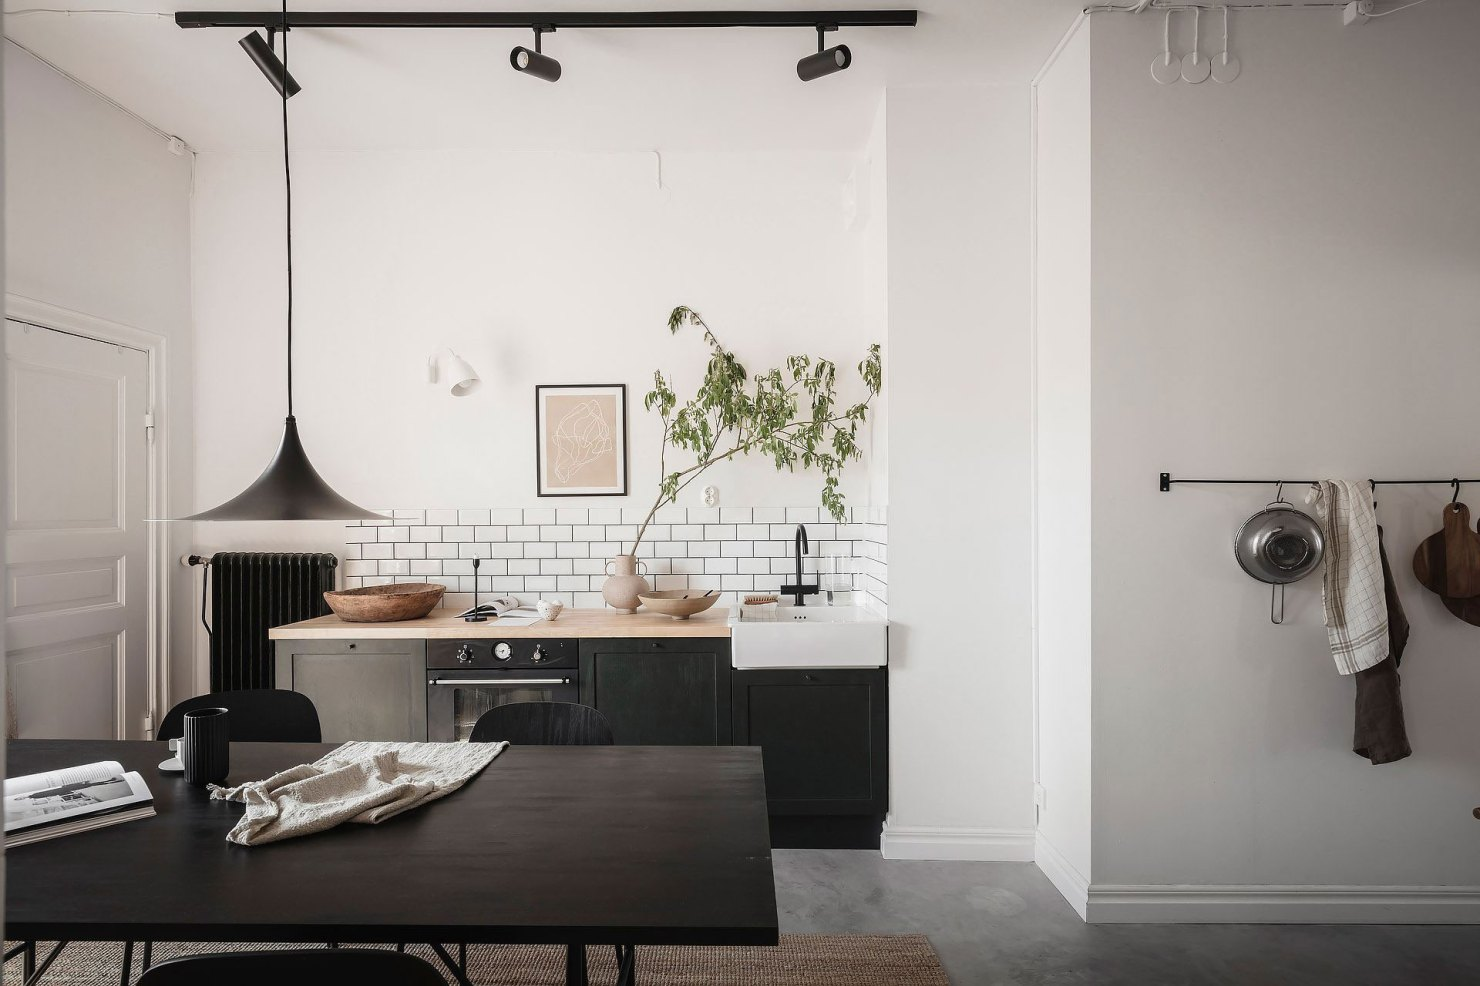 Minimalist monochrome kitchen with open-plan dining area, black units, wooden worktops and white metro tiles   How to design a lighting scheme that works for you   These Four Walls blog